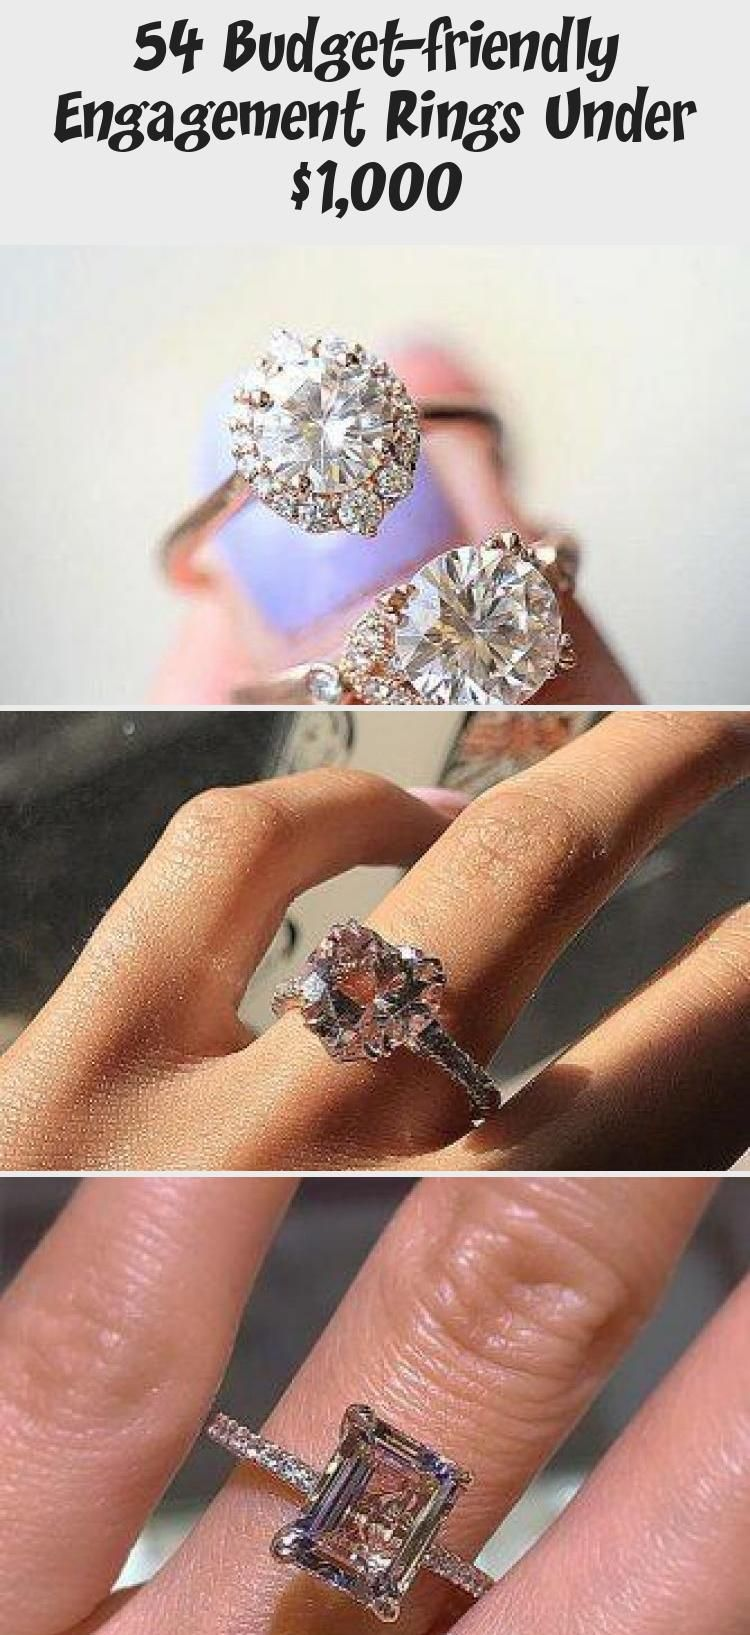 Budgetfriendly engagement rings under 1000